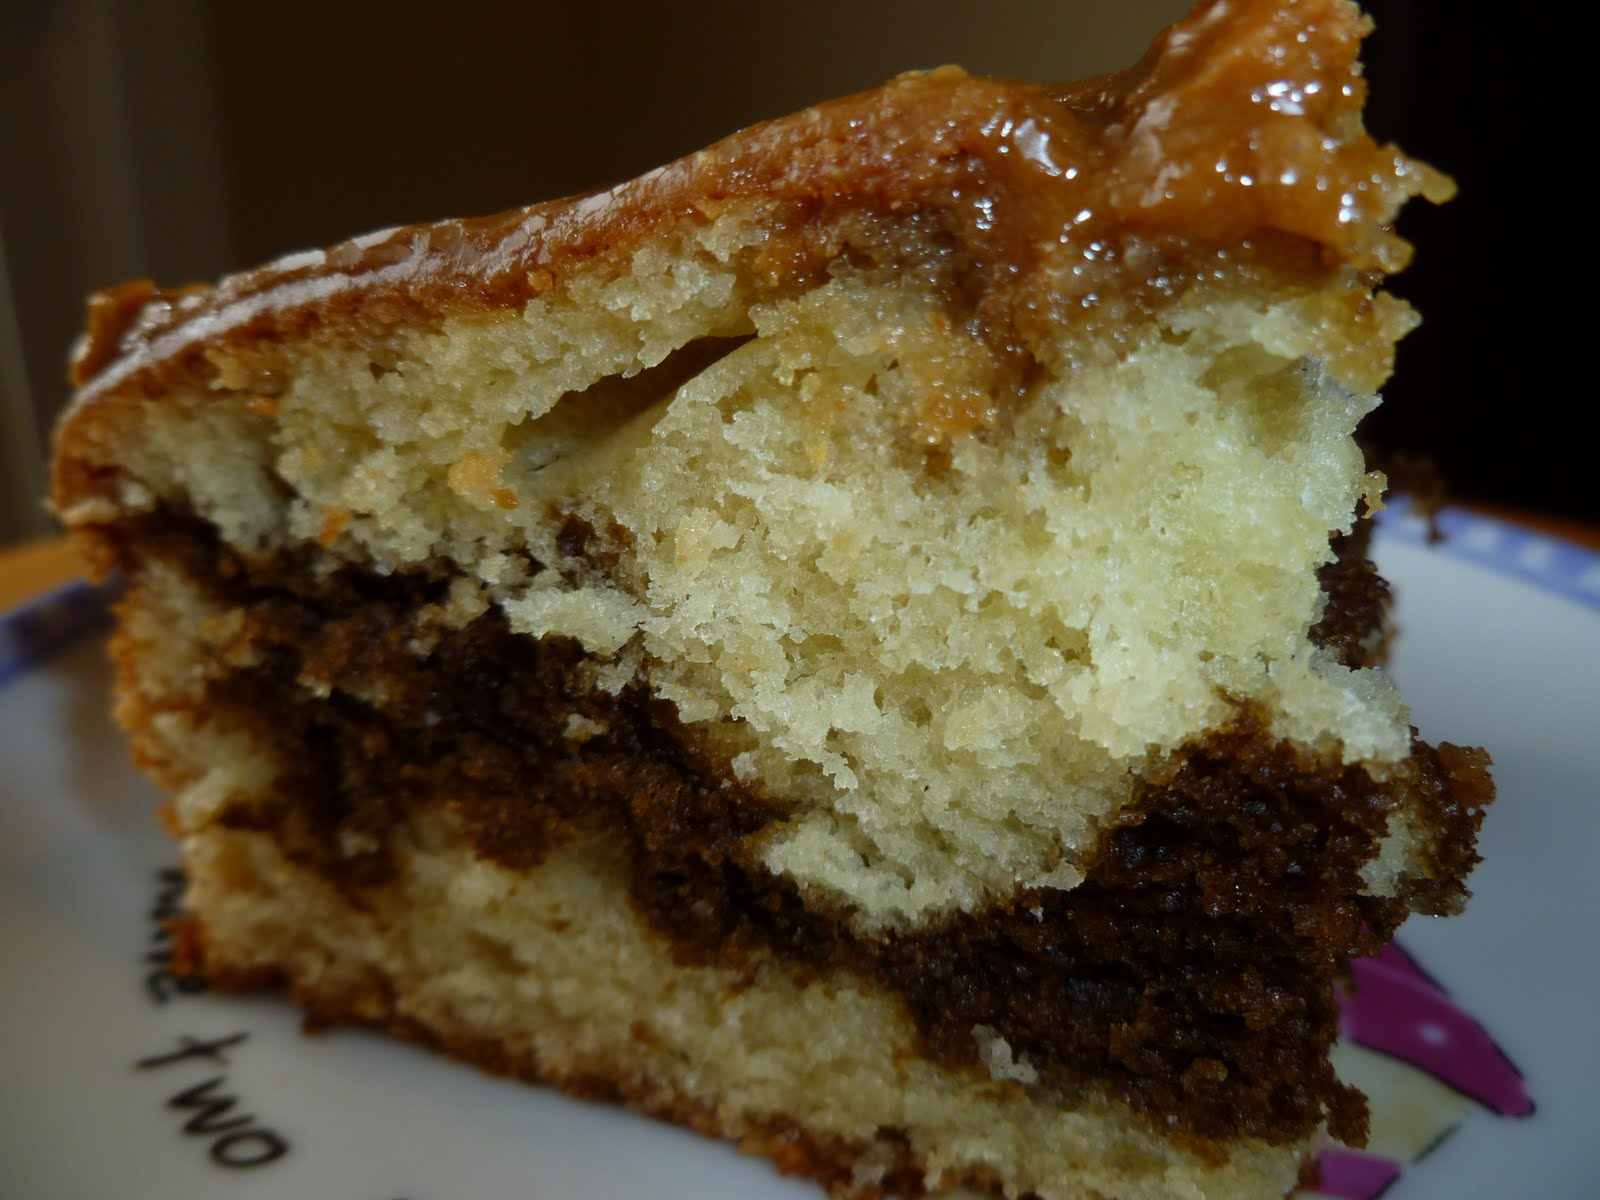 The Pastry Chef's Baking: Espresso Coffee Cake